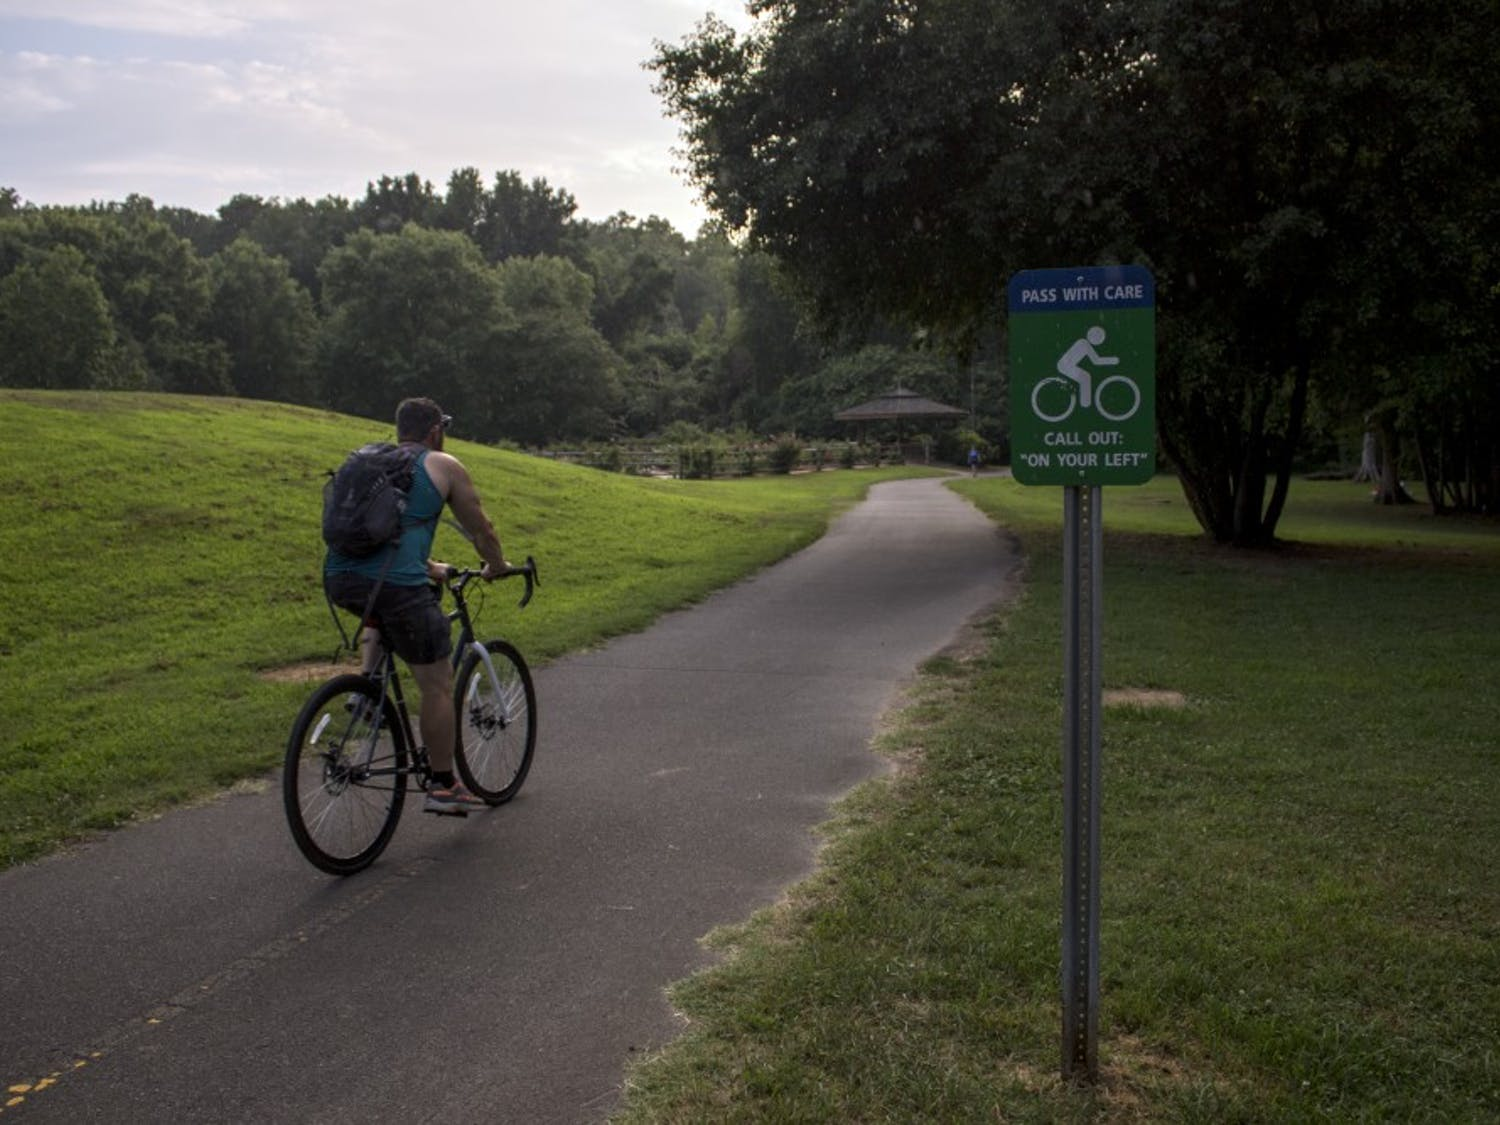 The Bolin Creek Greenway Trail is visited by pedestrians and cyclists on a daily basis.